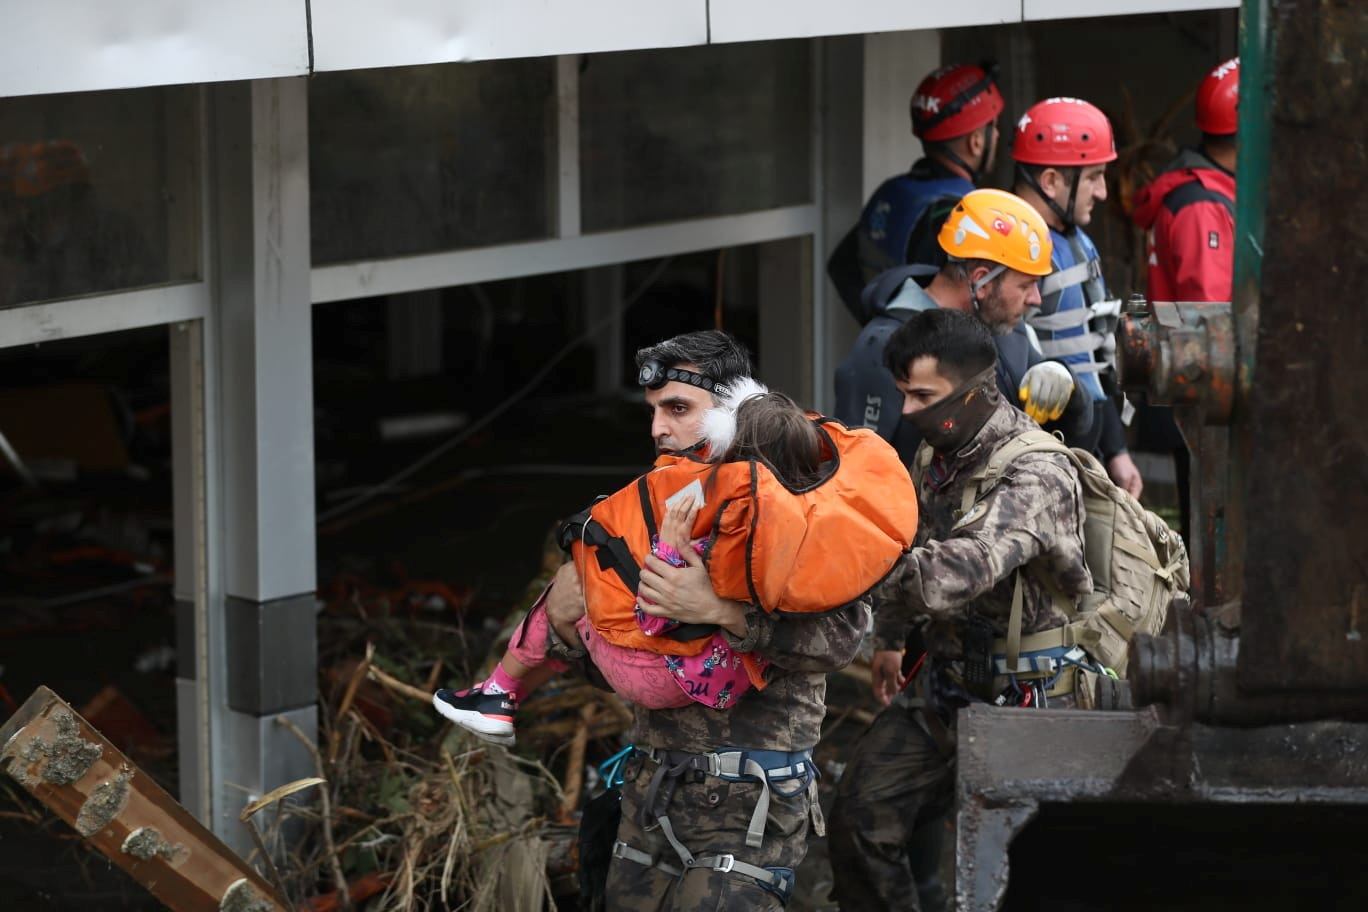 Search and Rescue team members evacuate a girl during flash floods which have swept through towns in the Turkish Black Sea region, in Bozkurt, a town in Kastamonu province, Turkey, August 12, 2021. Picture taken August 12, 2021. Onder Godez/Ministry of Interior Disaster and Emergency Management Authority (AFAD) Press Office/Handout via REUTERS